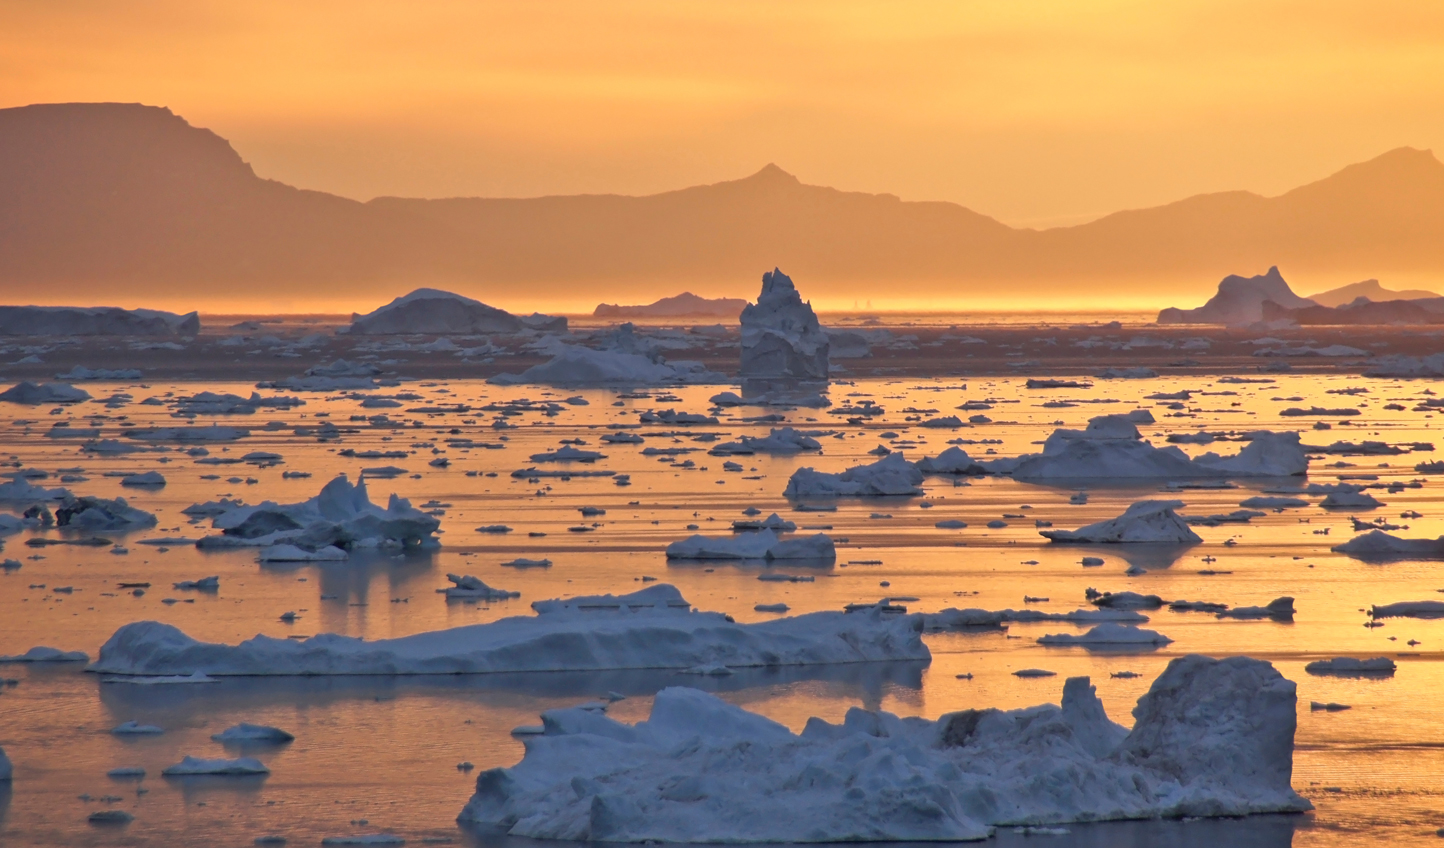 Watch the sunset over the largest glaciers in the world